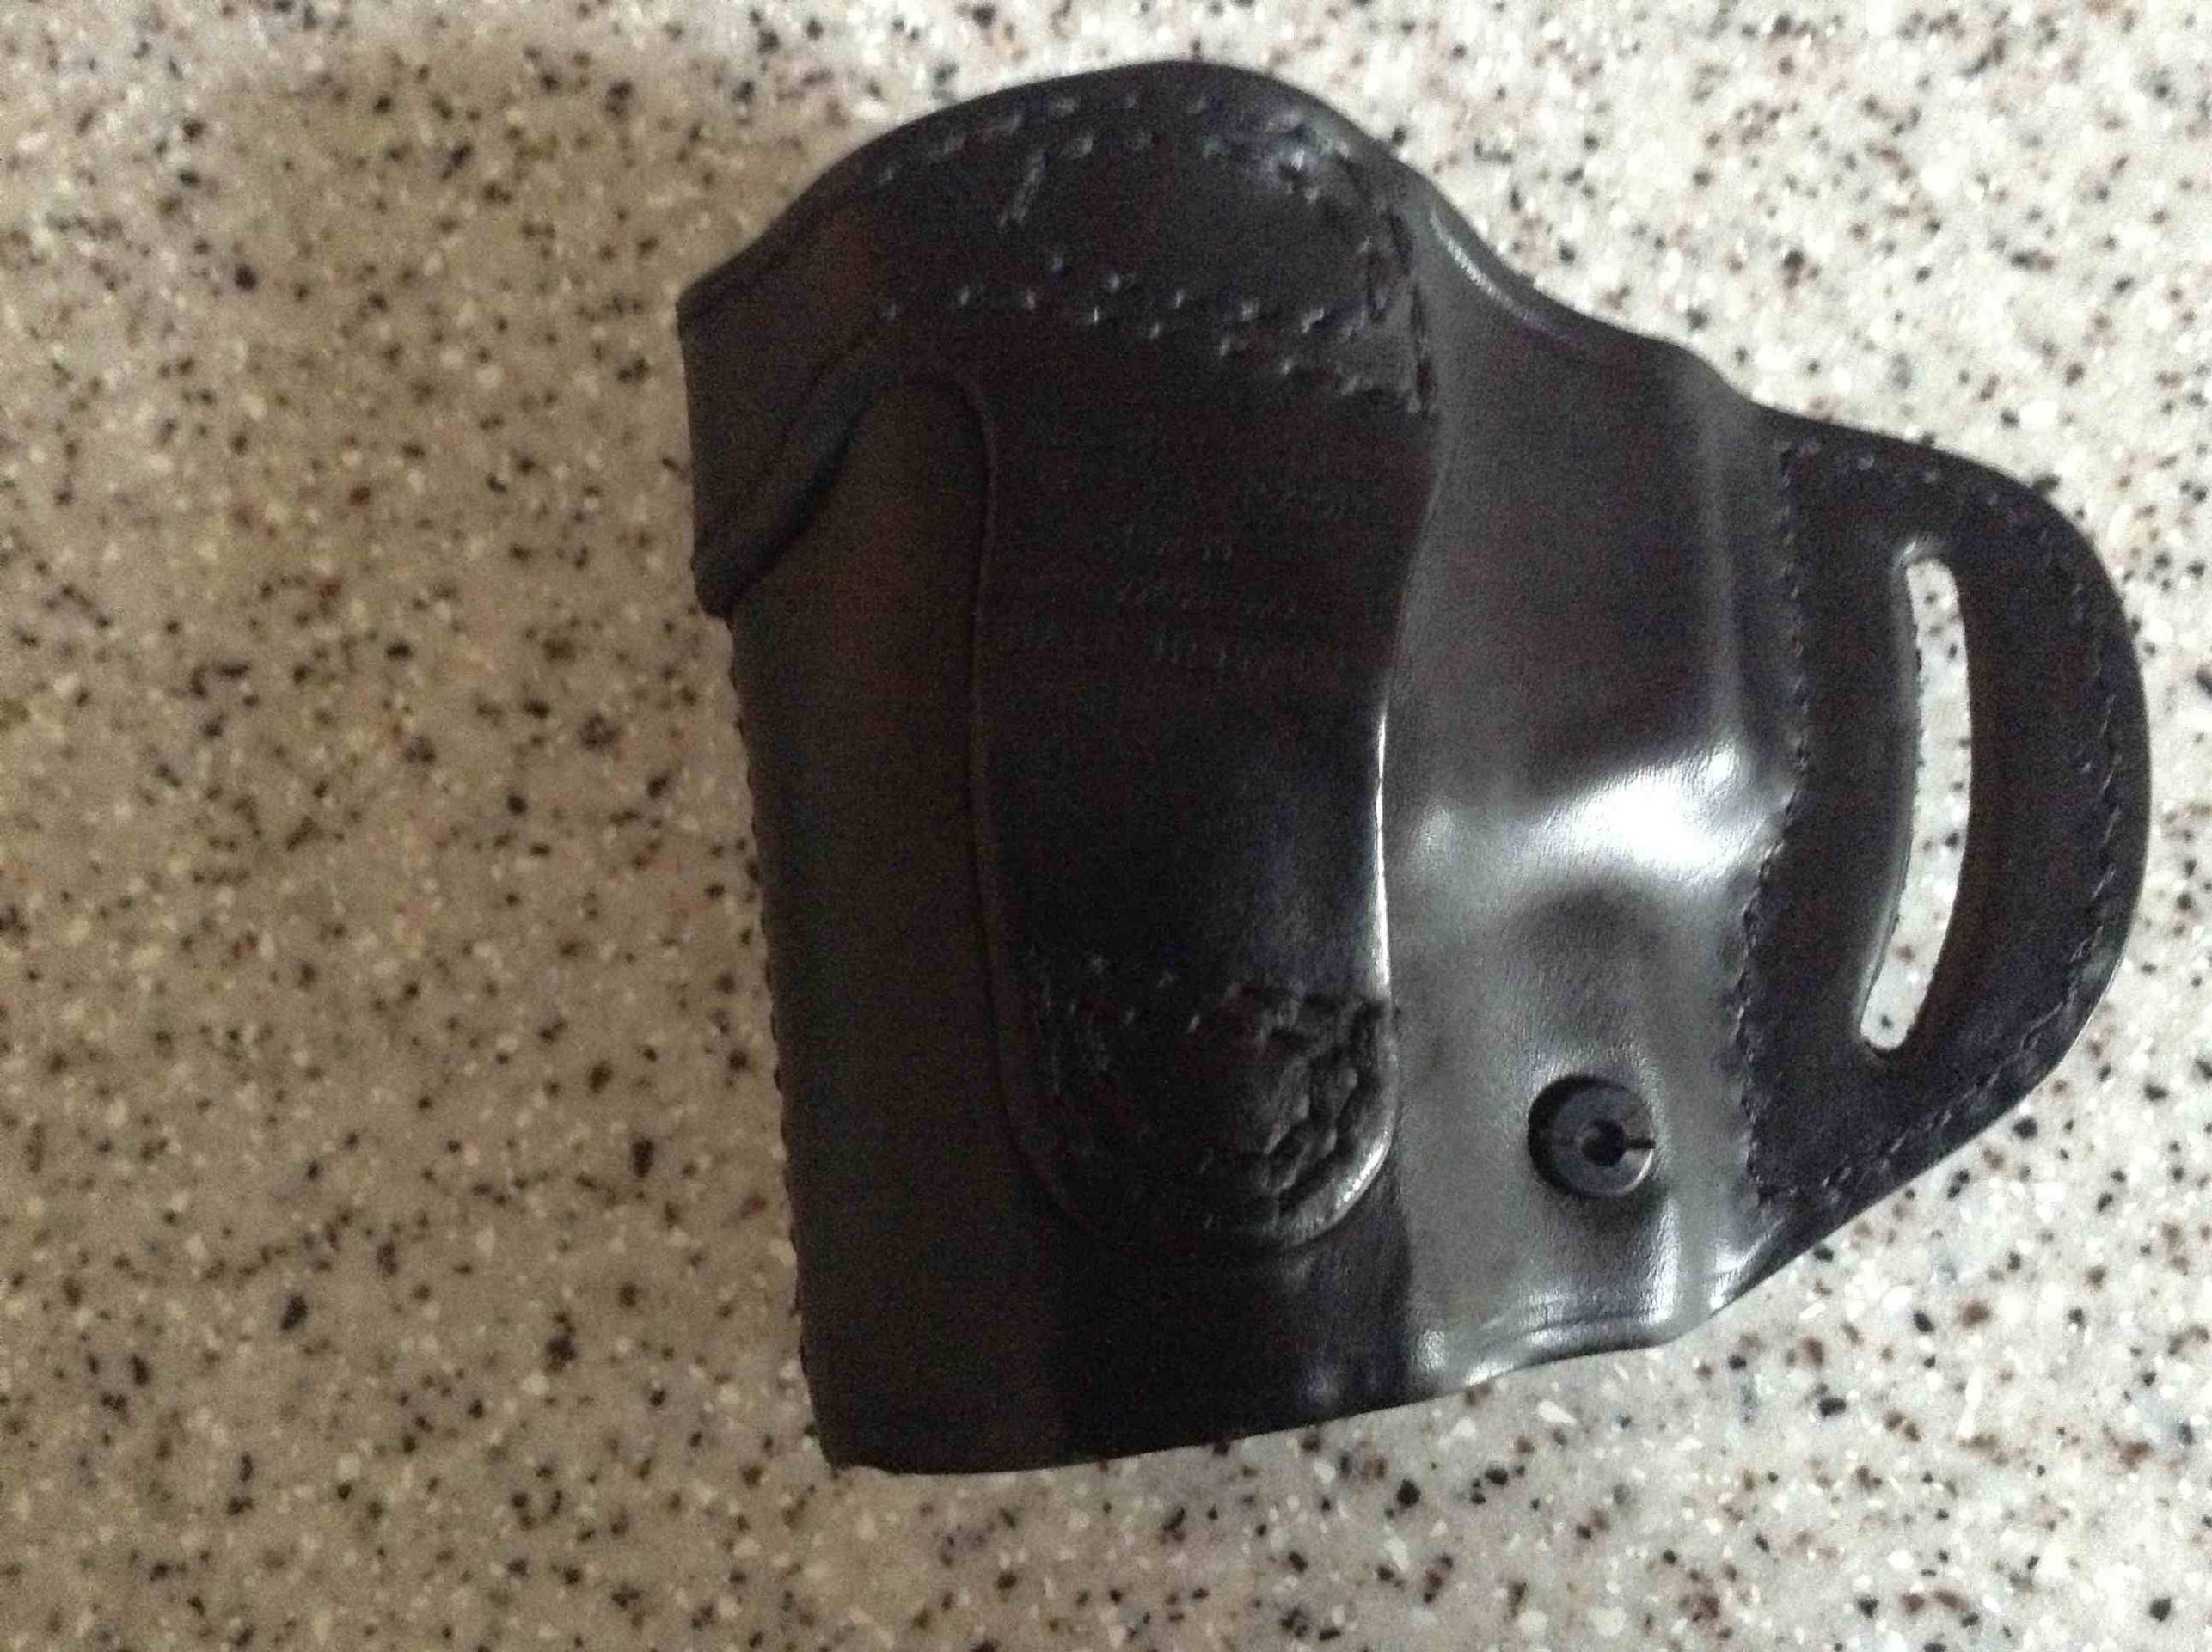 Blackhawk and Bianchi Sig P220/226 leather holsters for sale-imageuploadedbytapatalk-hd1364661259.287874.jpg